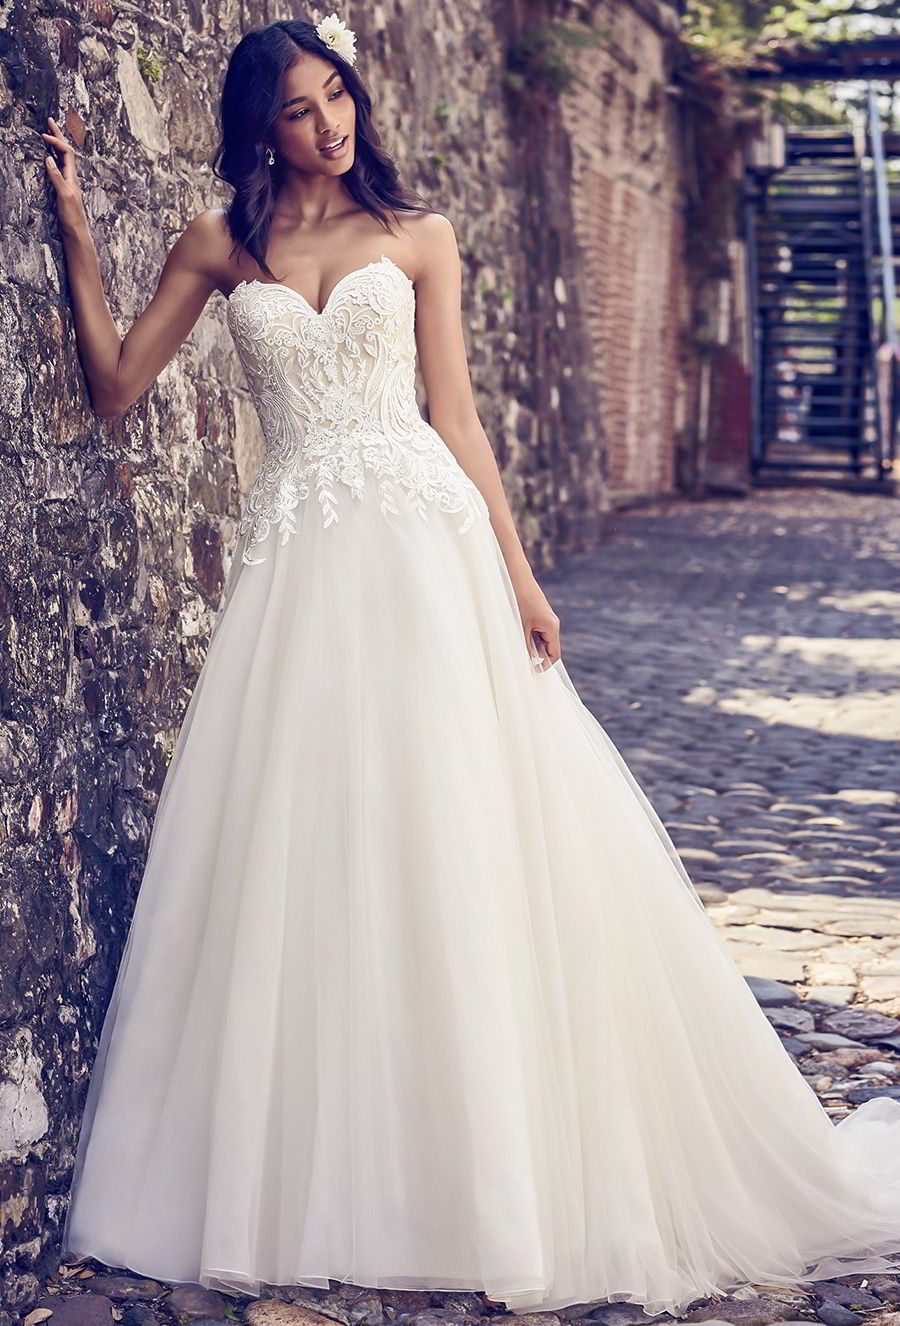 maggie sottero 2018 gold dress (rayna) strapless sweetheart lace bodice ball gown wedding dress romantic champagne mv